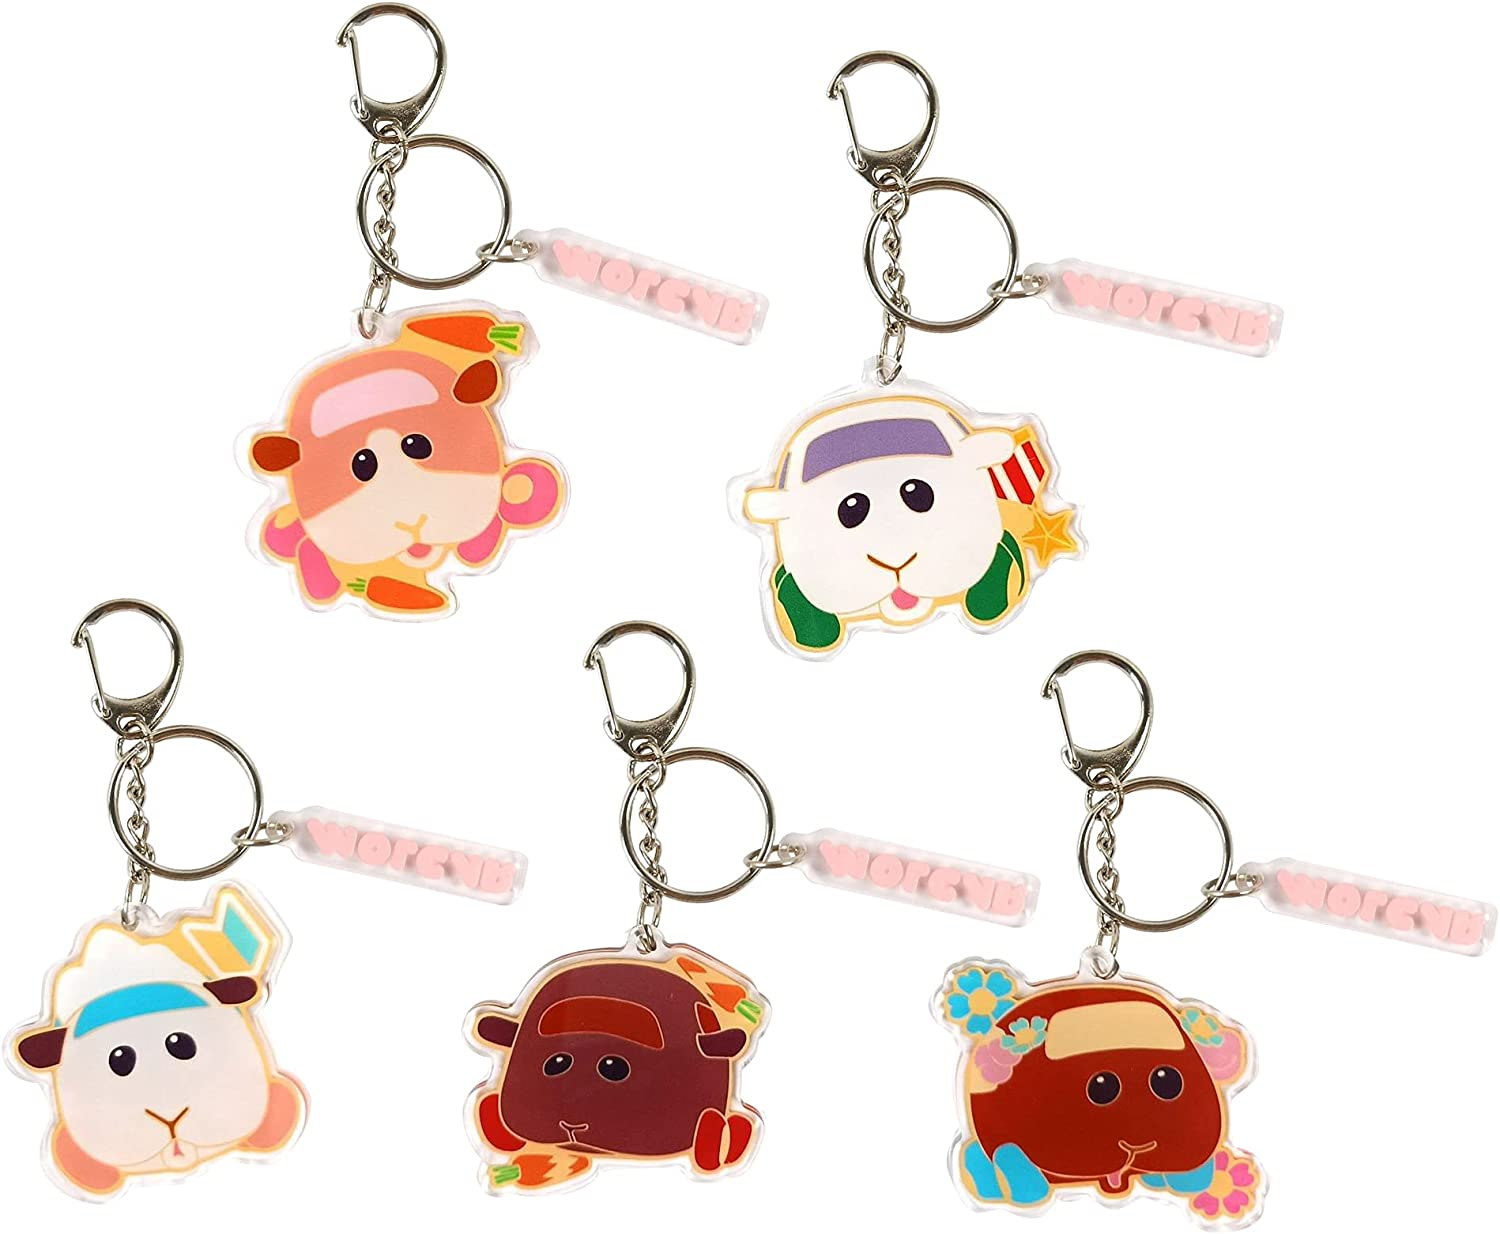 Cartoon Pui Pui Molcar Key Chain Set, Guinea Pig Key Ring, Cute Acrylic Keyring for Bag, Backpack, Gifts for Anime Fans